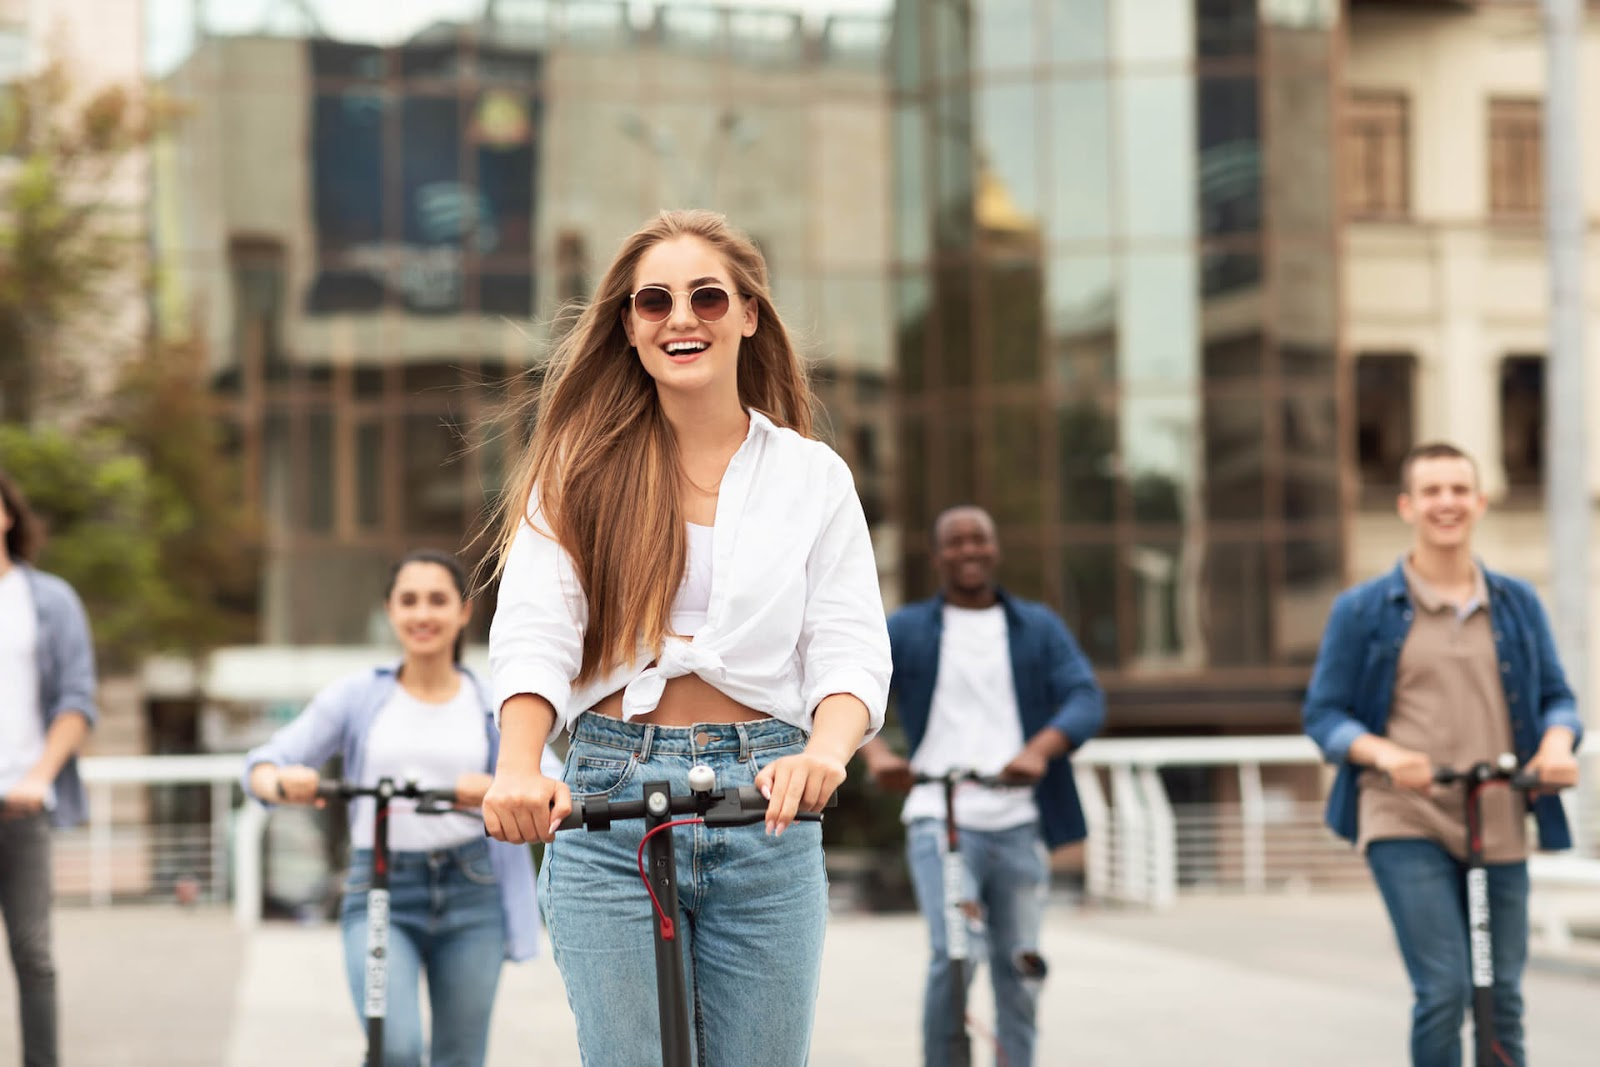 Woman scootering around a city with her friends